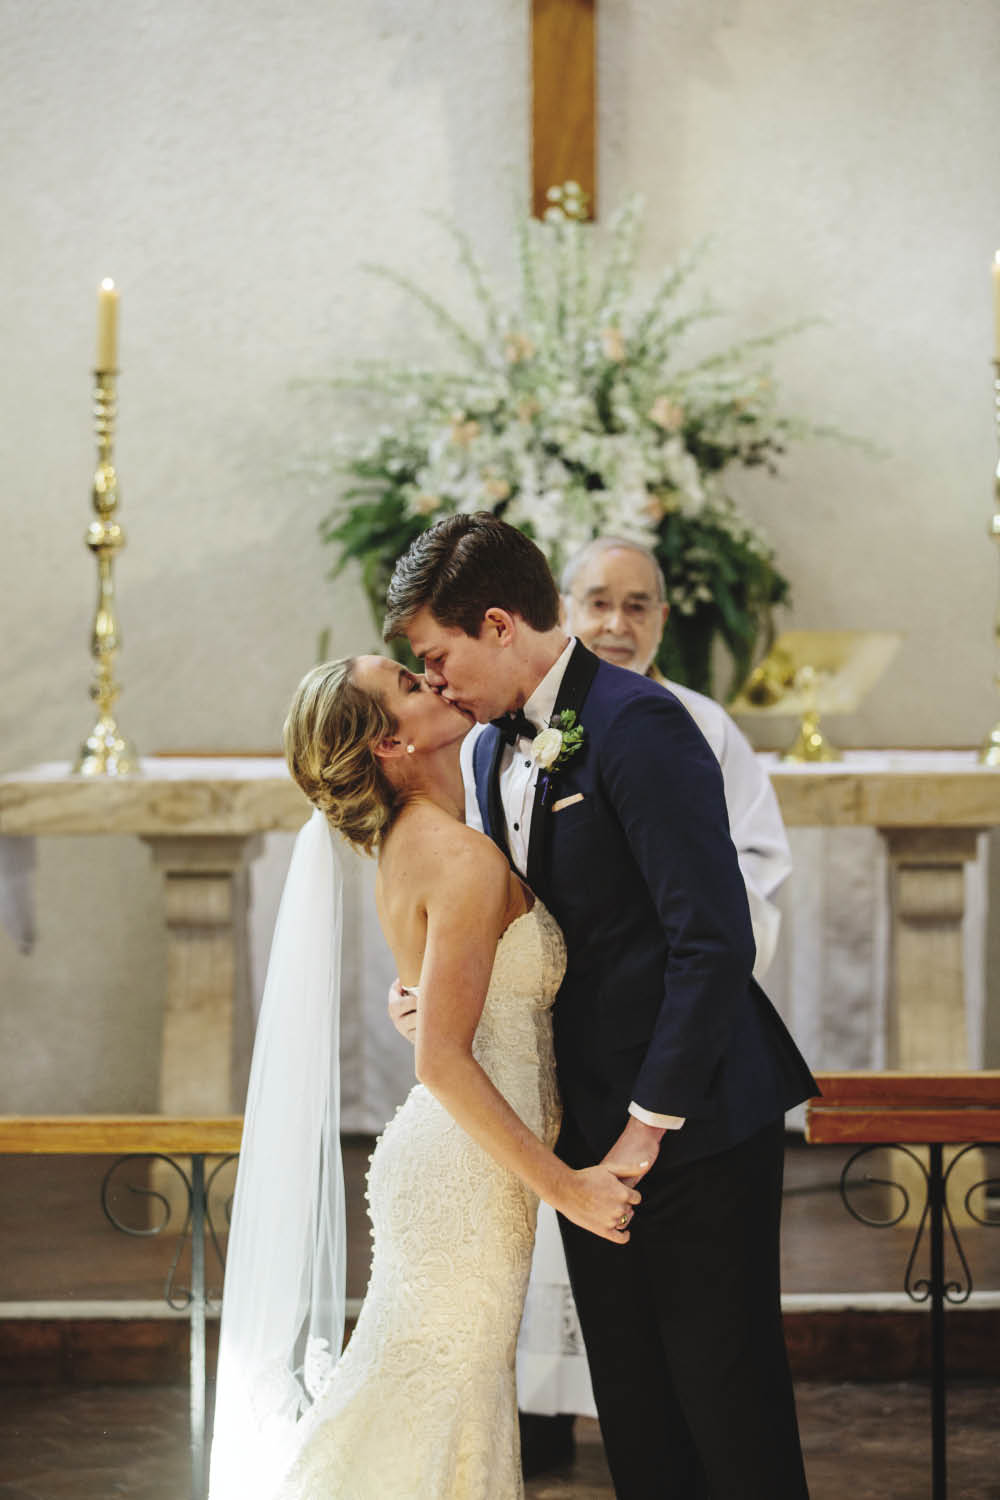 Taking Vows: Claybrook and Gibbs